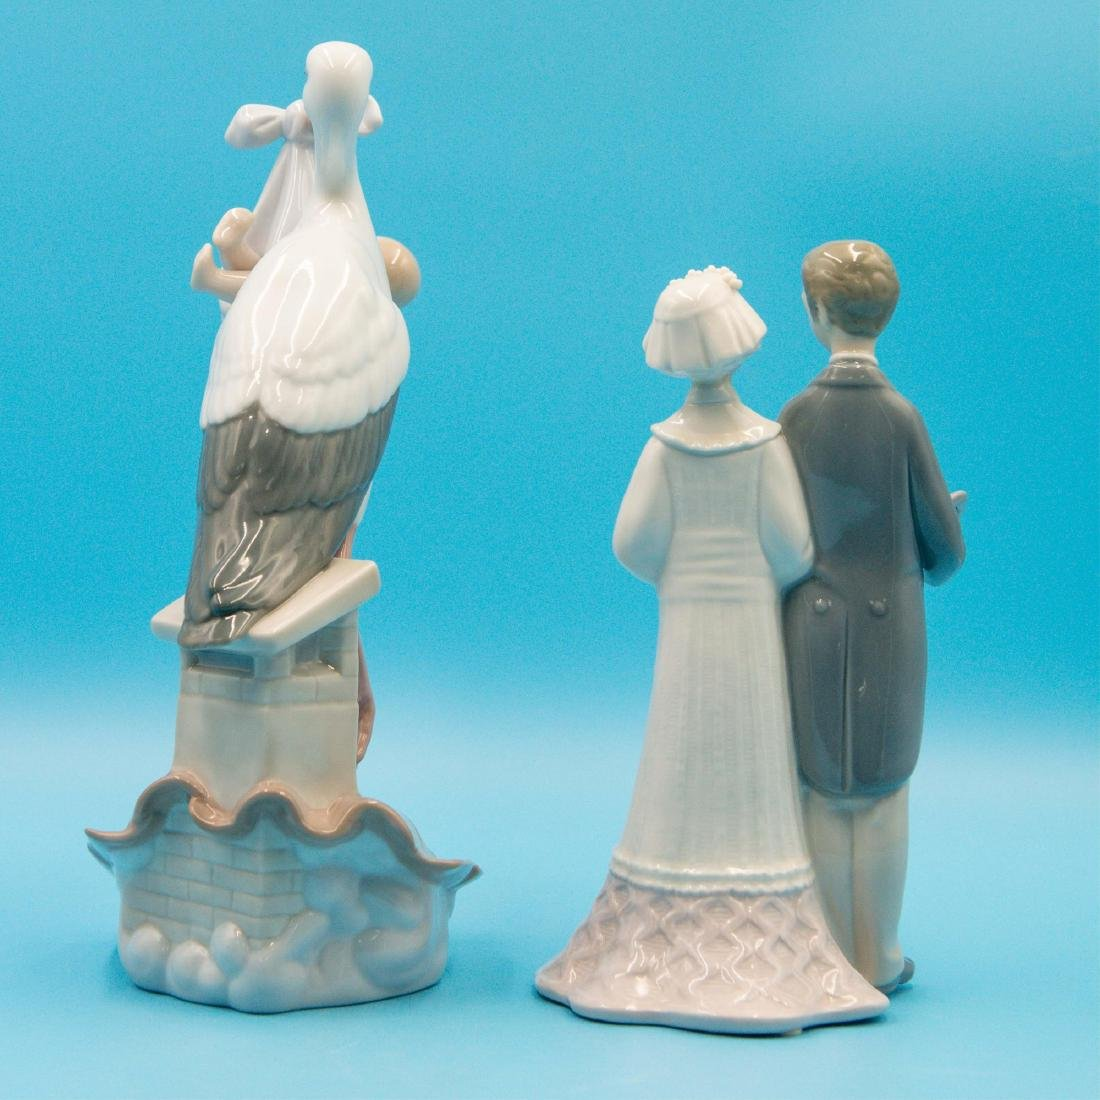 LLADRO WEDDING 4808 AND SPECIAL GIFT 6228 - 3